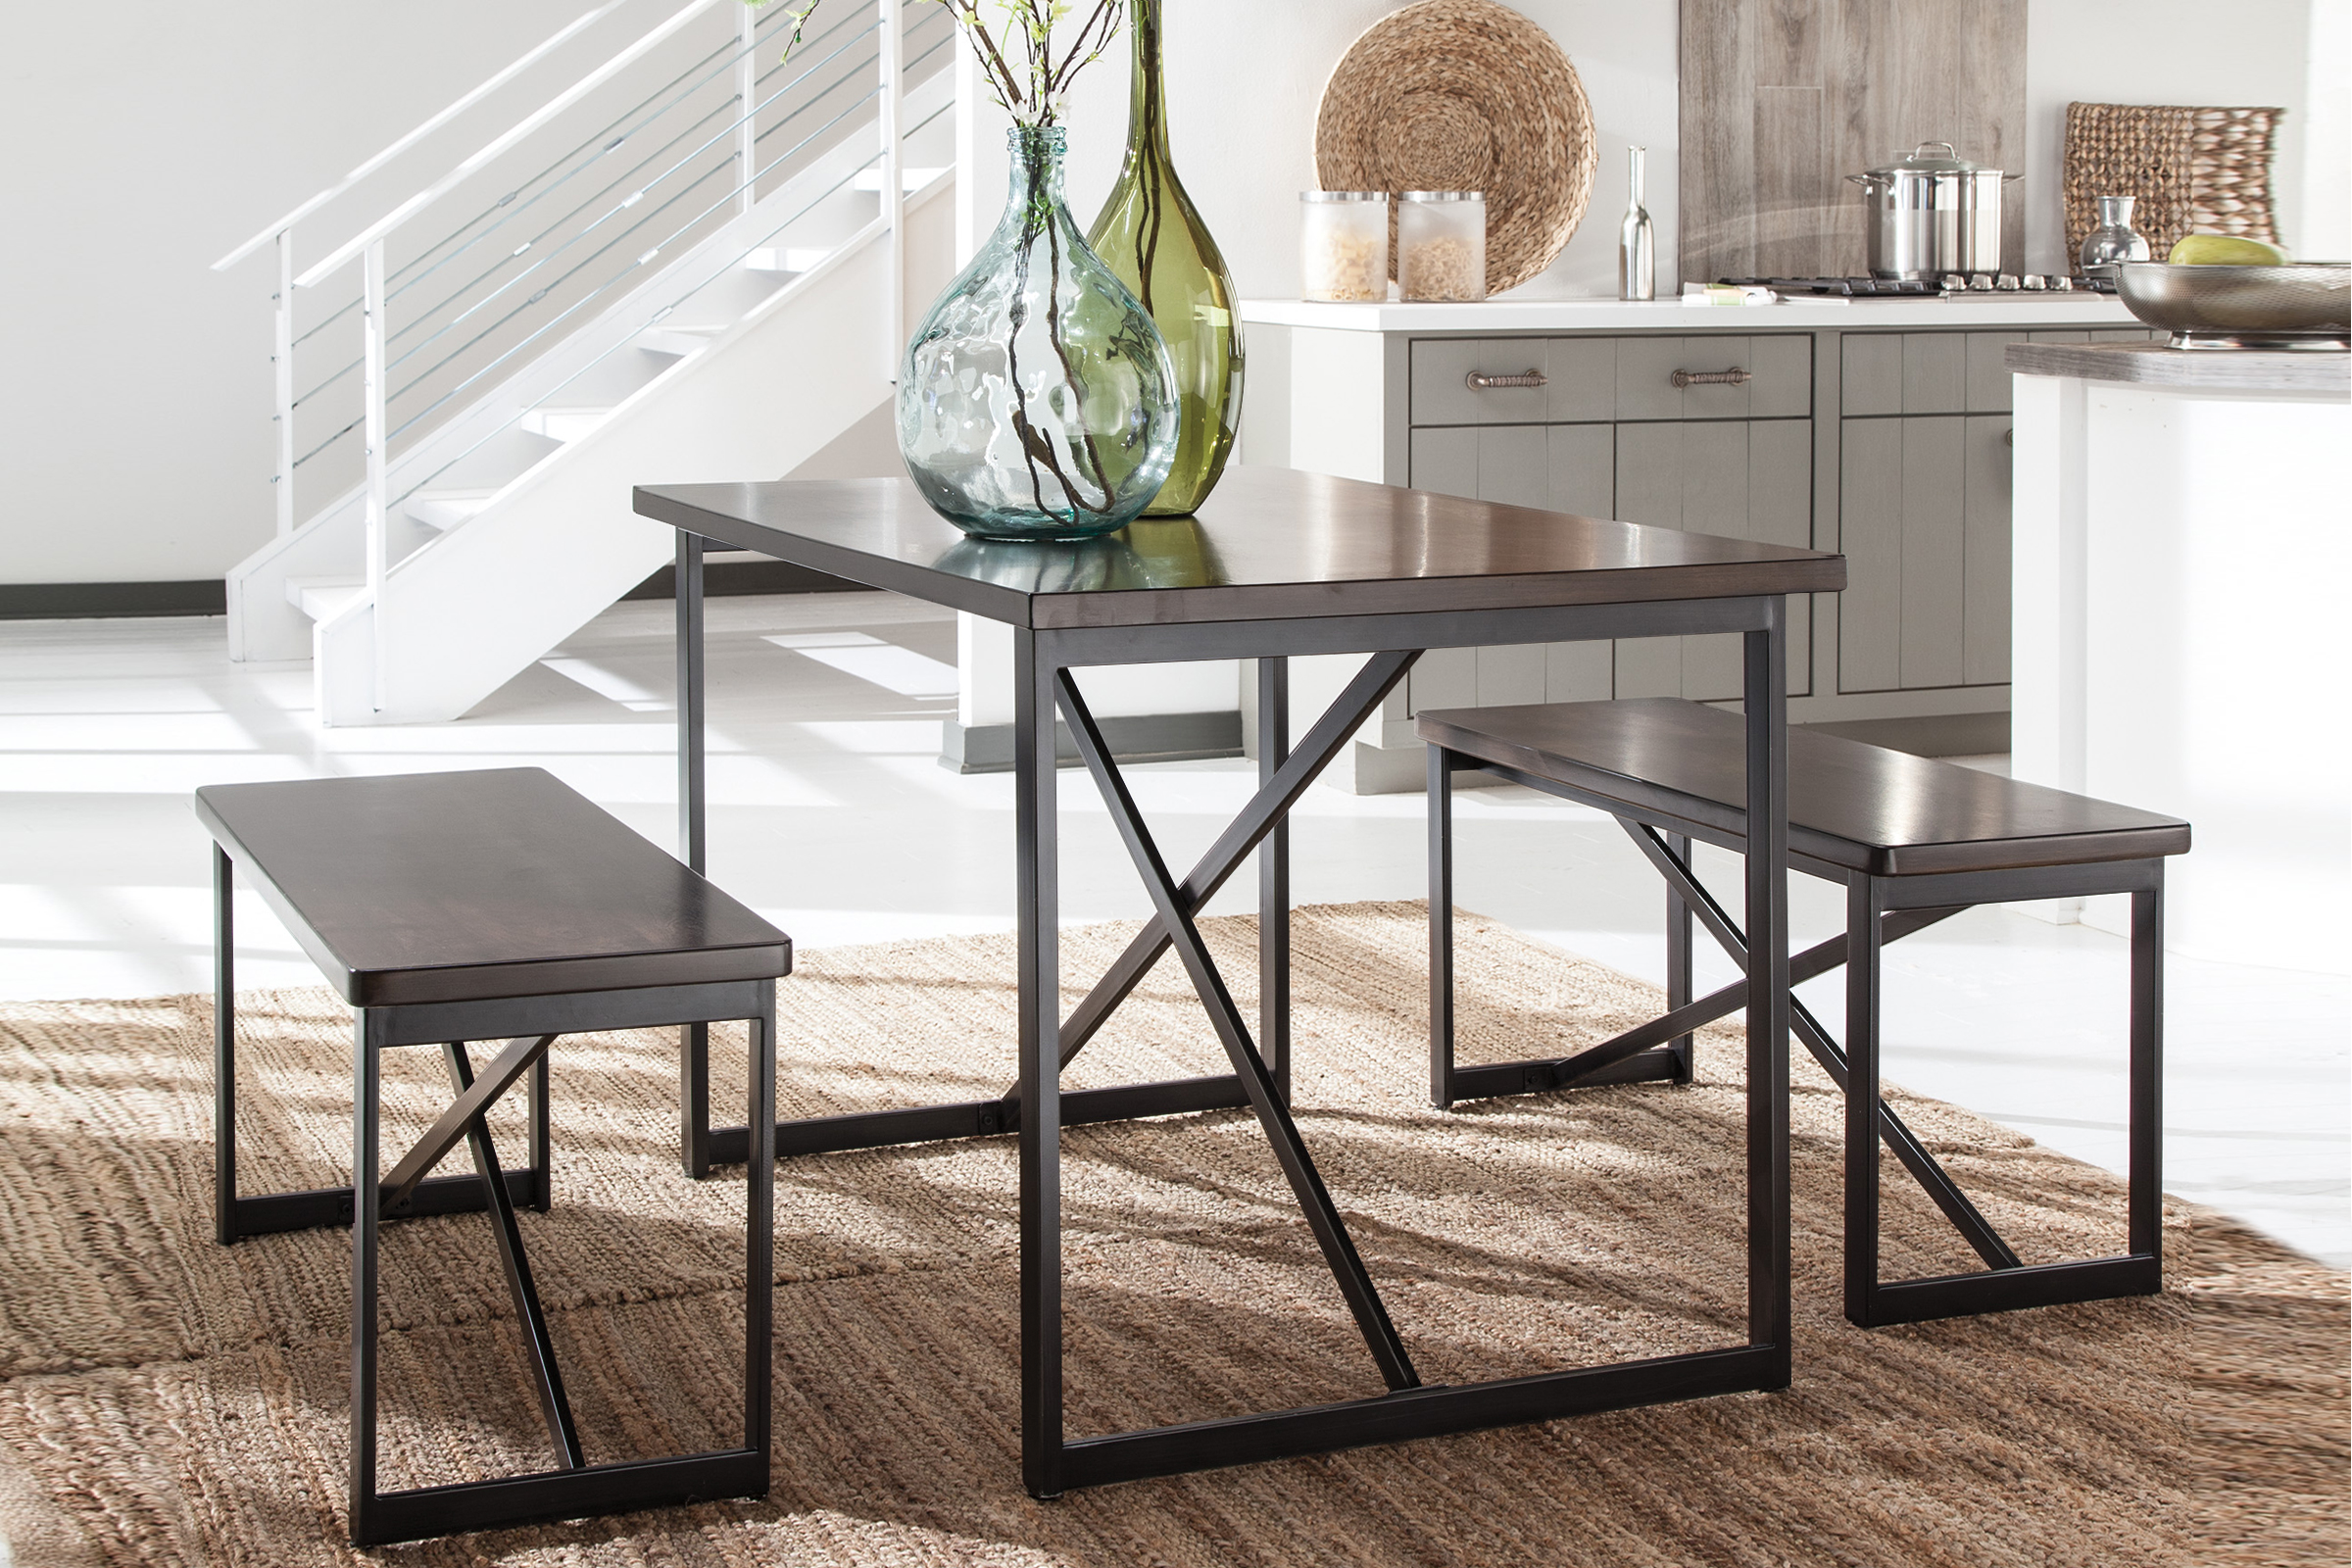 White wood dining room table - Joring Packages From 299 99